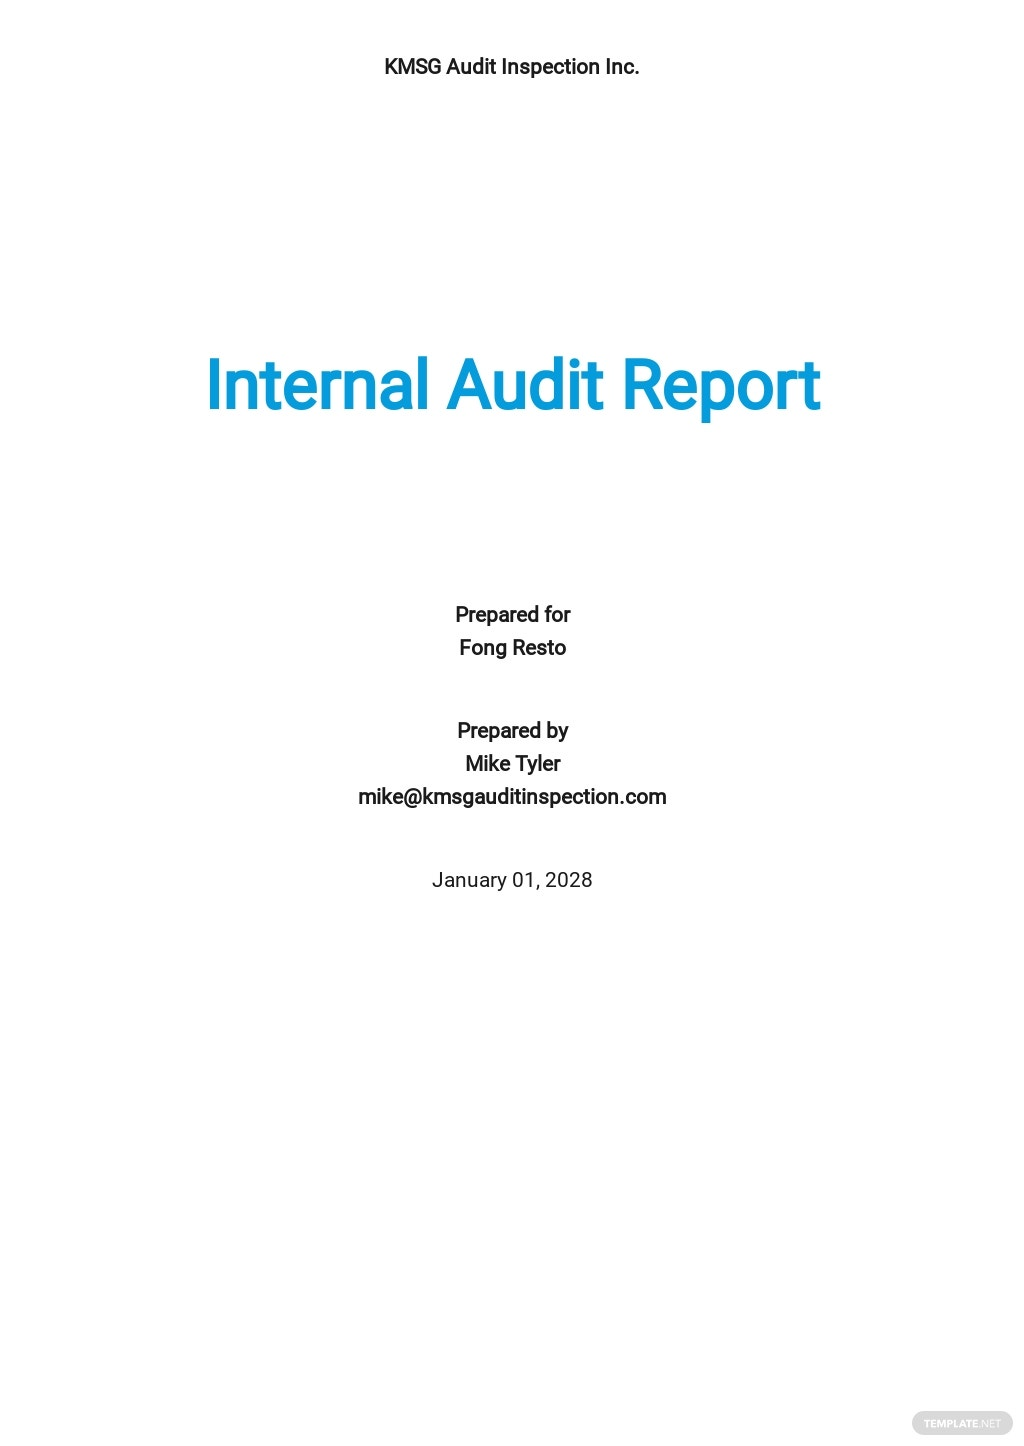 Internal Audit Report Template